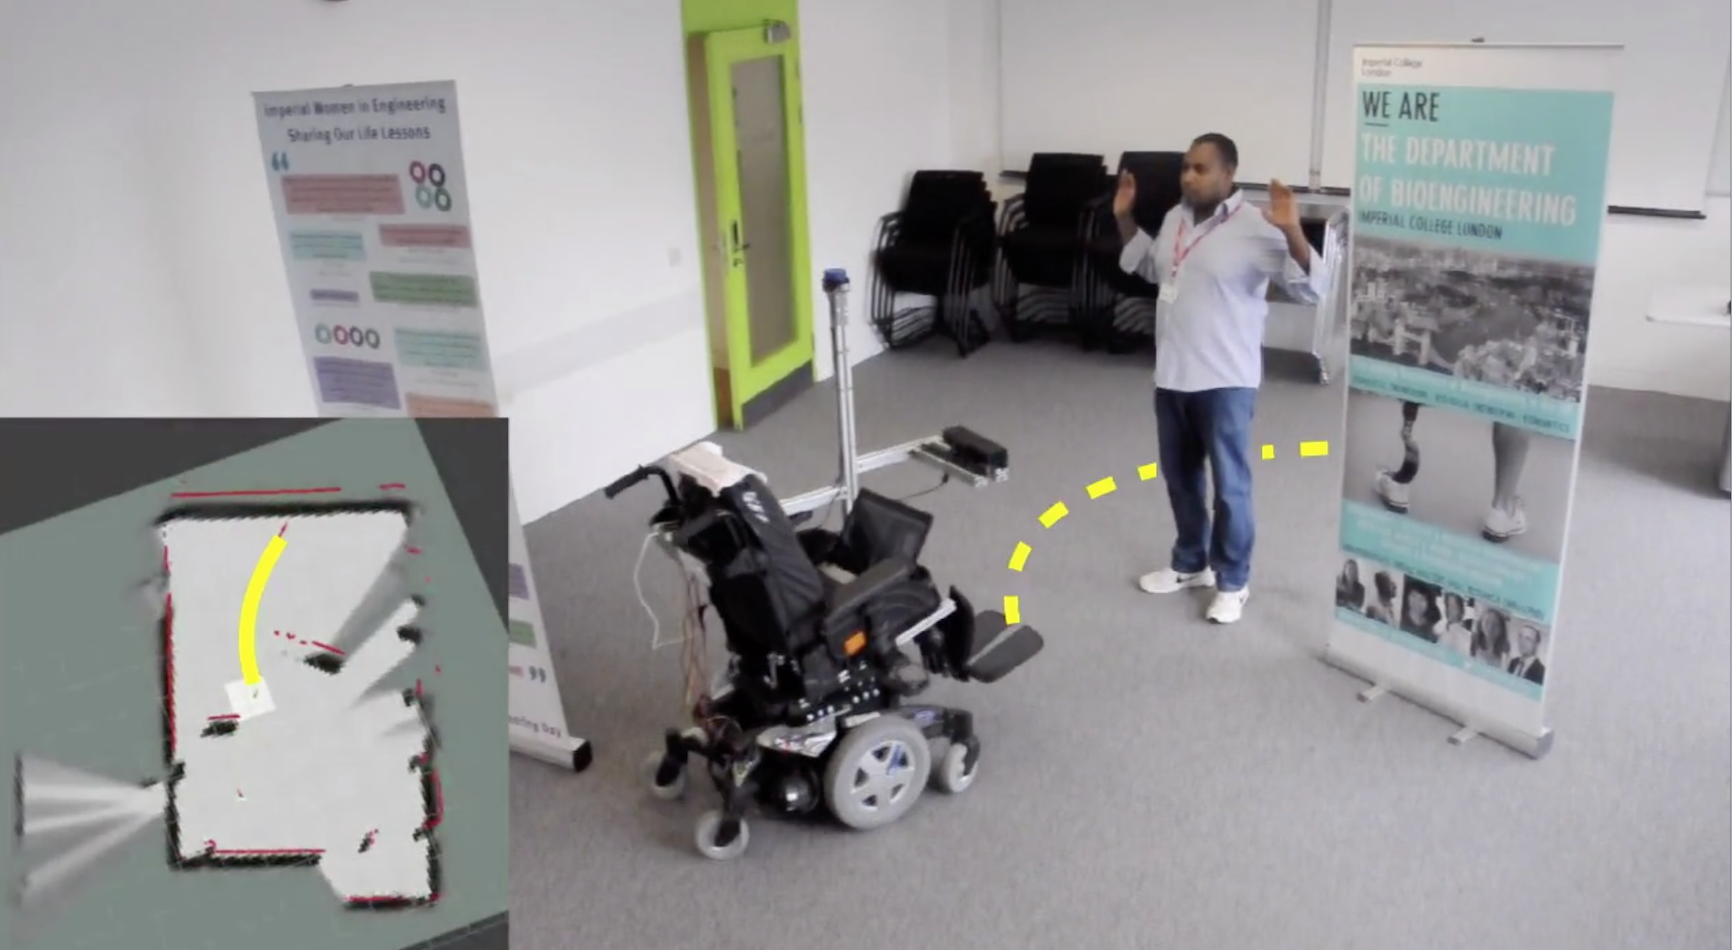 AI powered wheelchair crosses a room avoiding obstacles